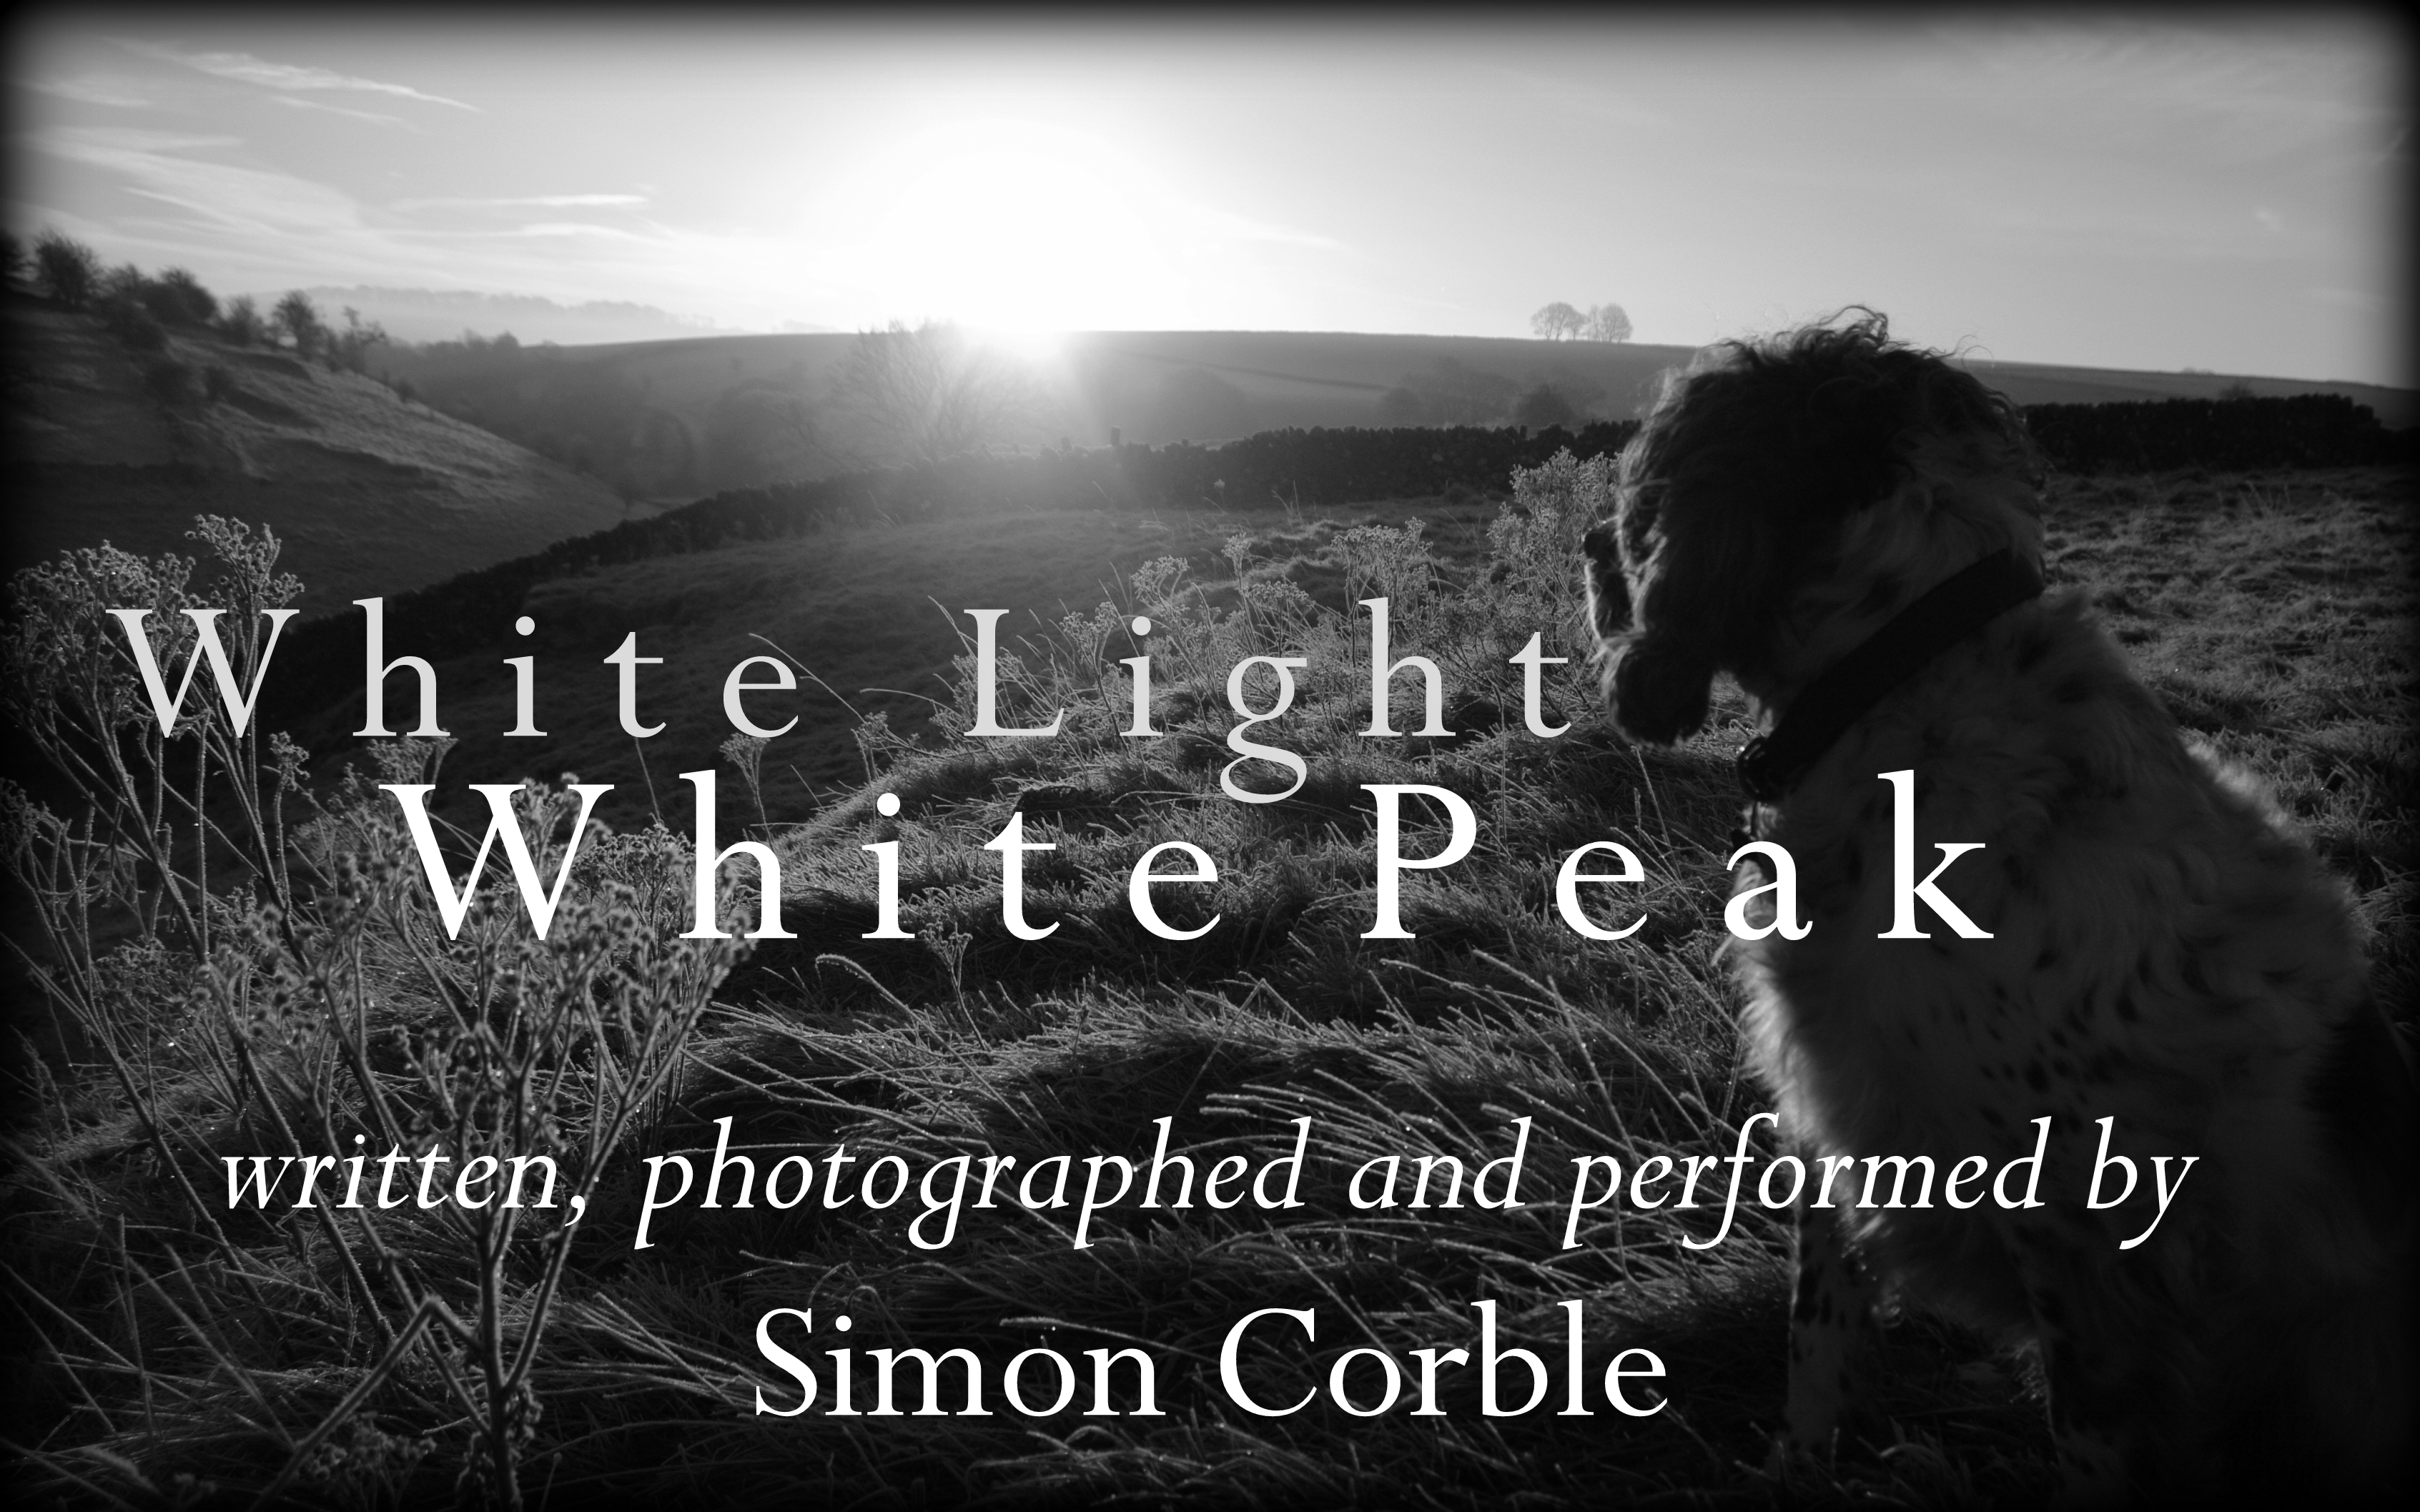 A journey through my White Peak year, in poems and photographs